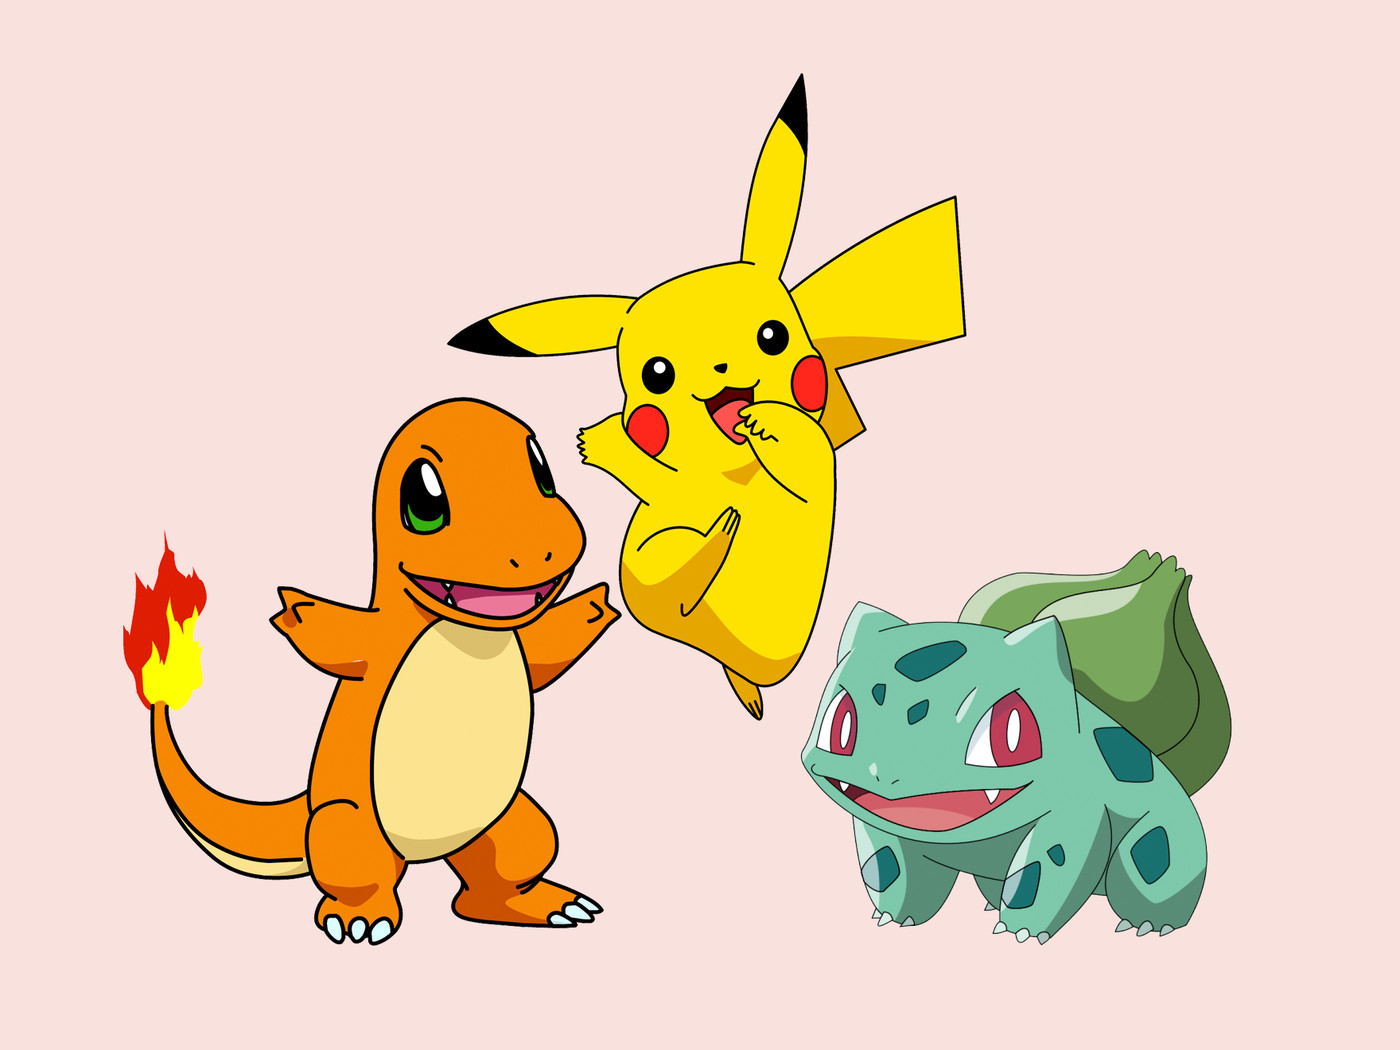 Brain scans reveal a 'pokémon region' in adults who played as kids ...